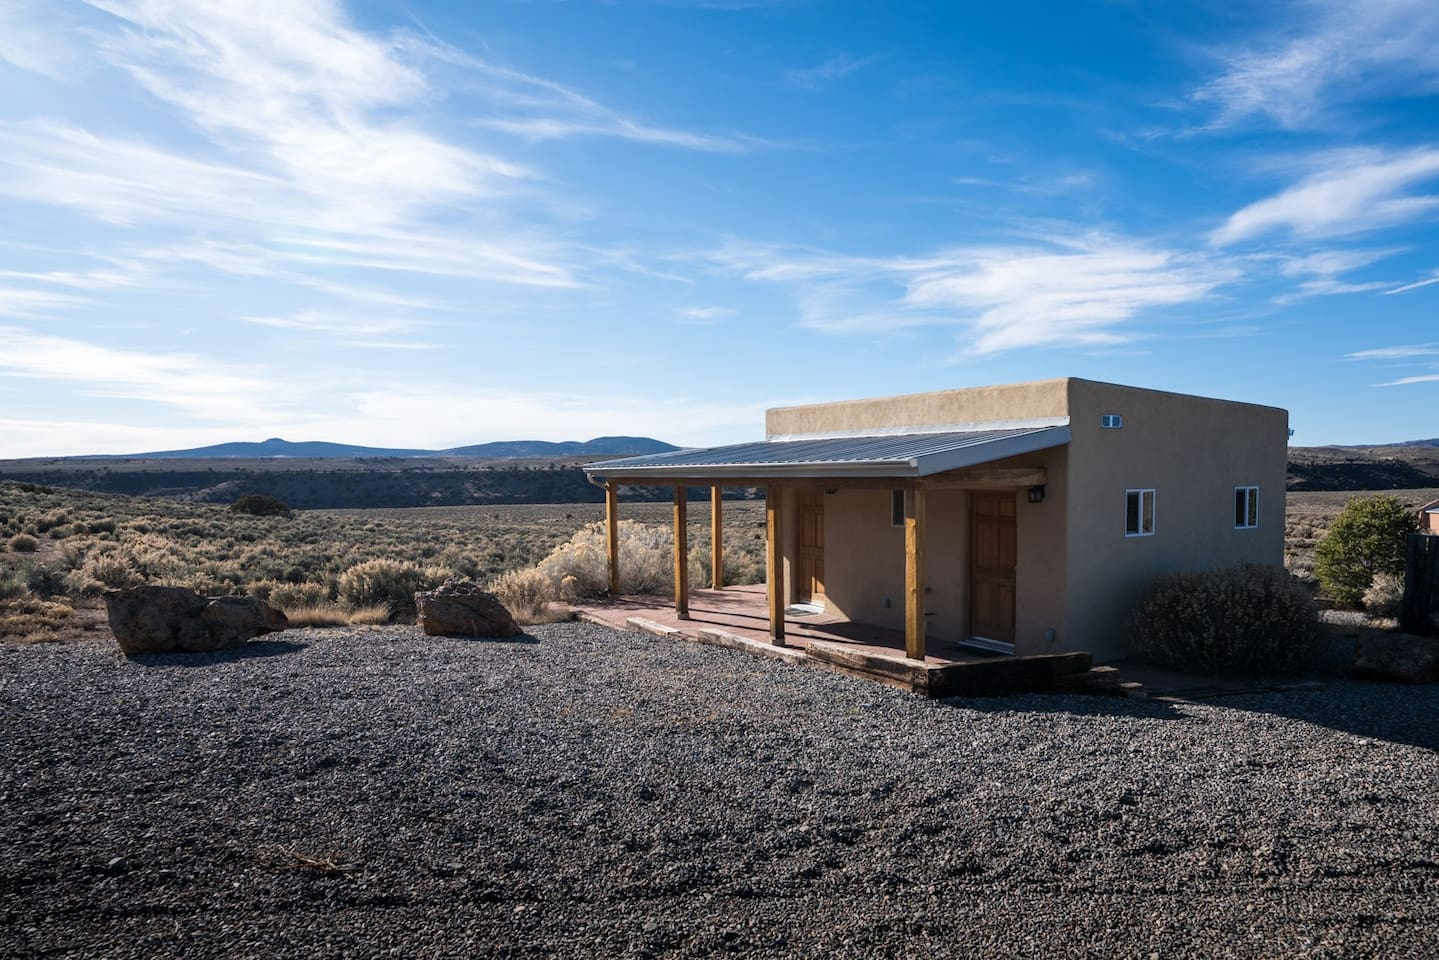 Tiny Bunkhouse with Rio Grande canyon in background. .